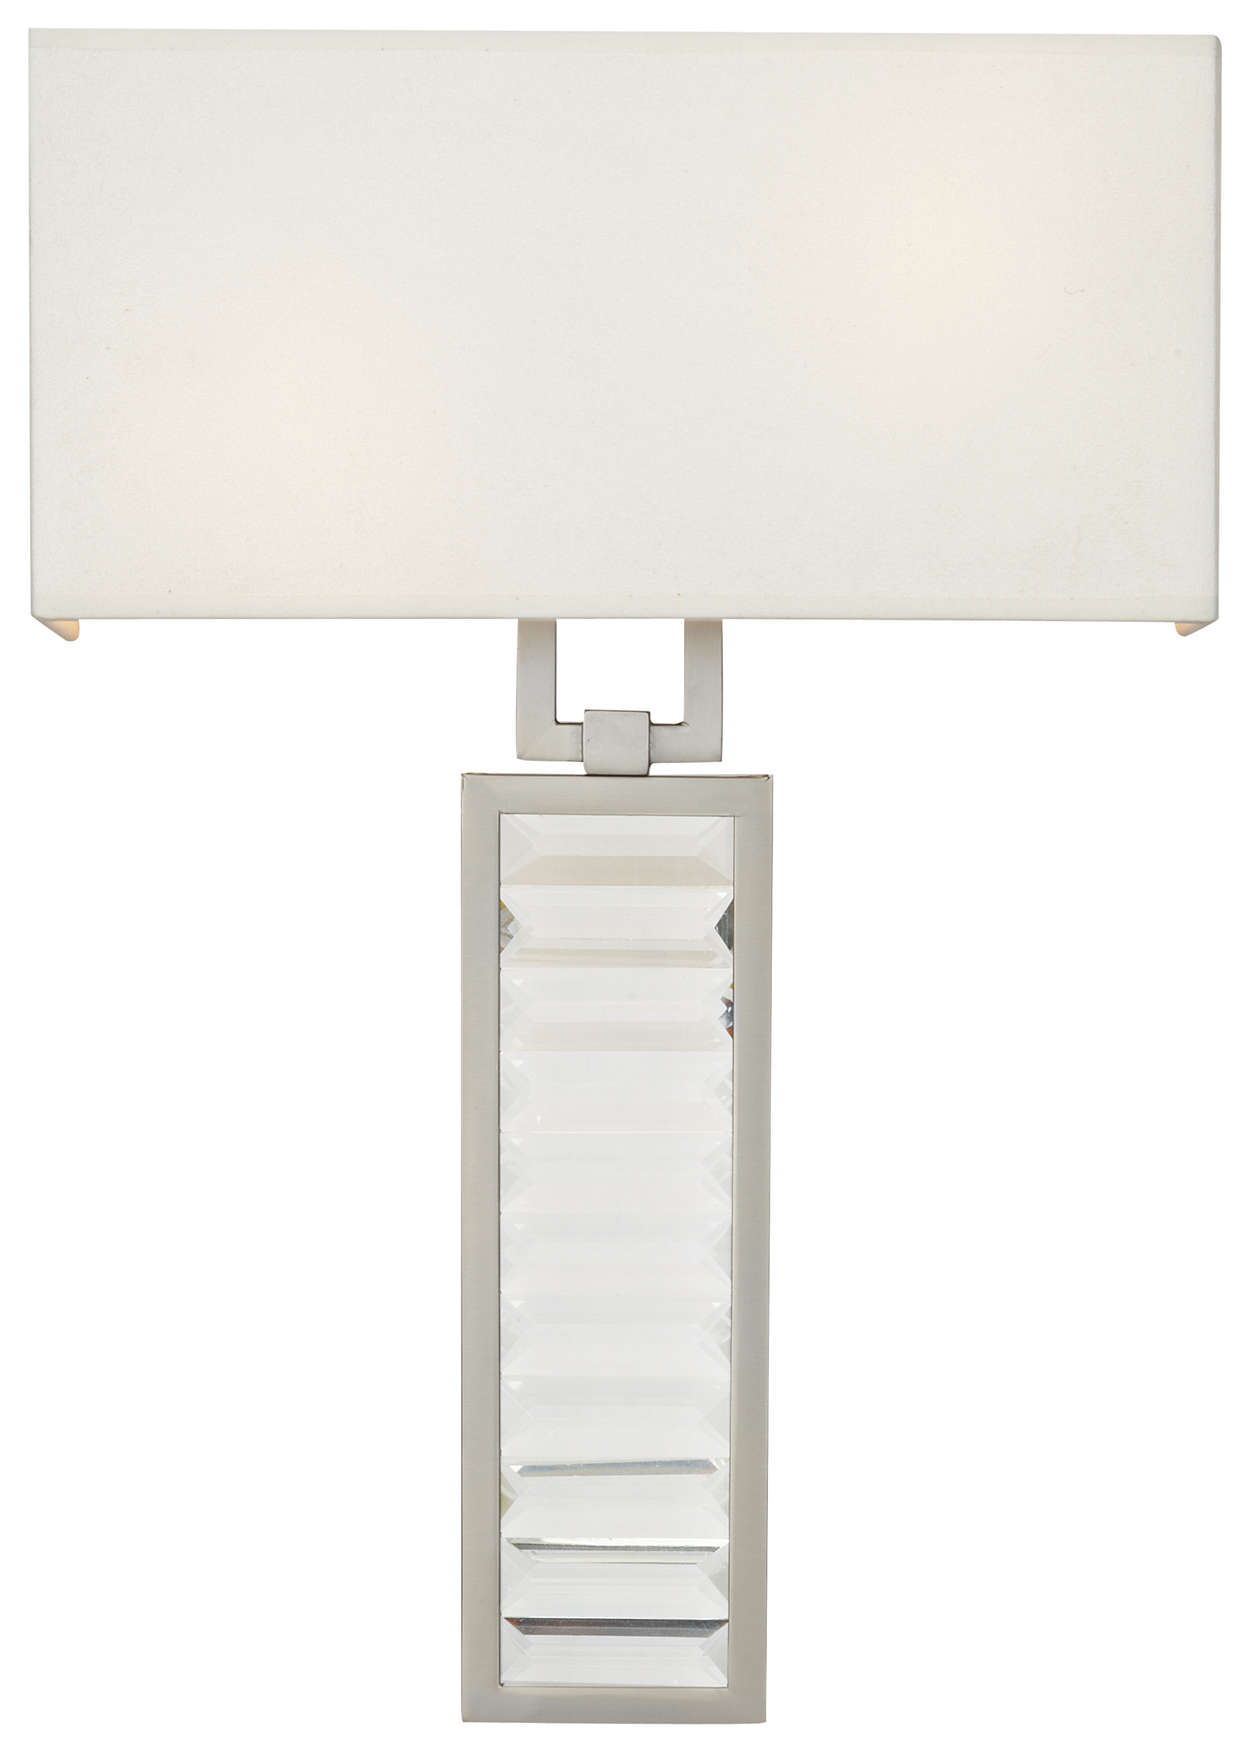 Zsa Zsa 2-light Bath in Brushed Nickel finish